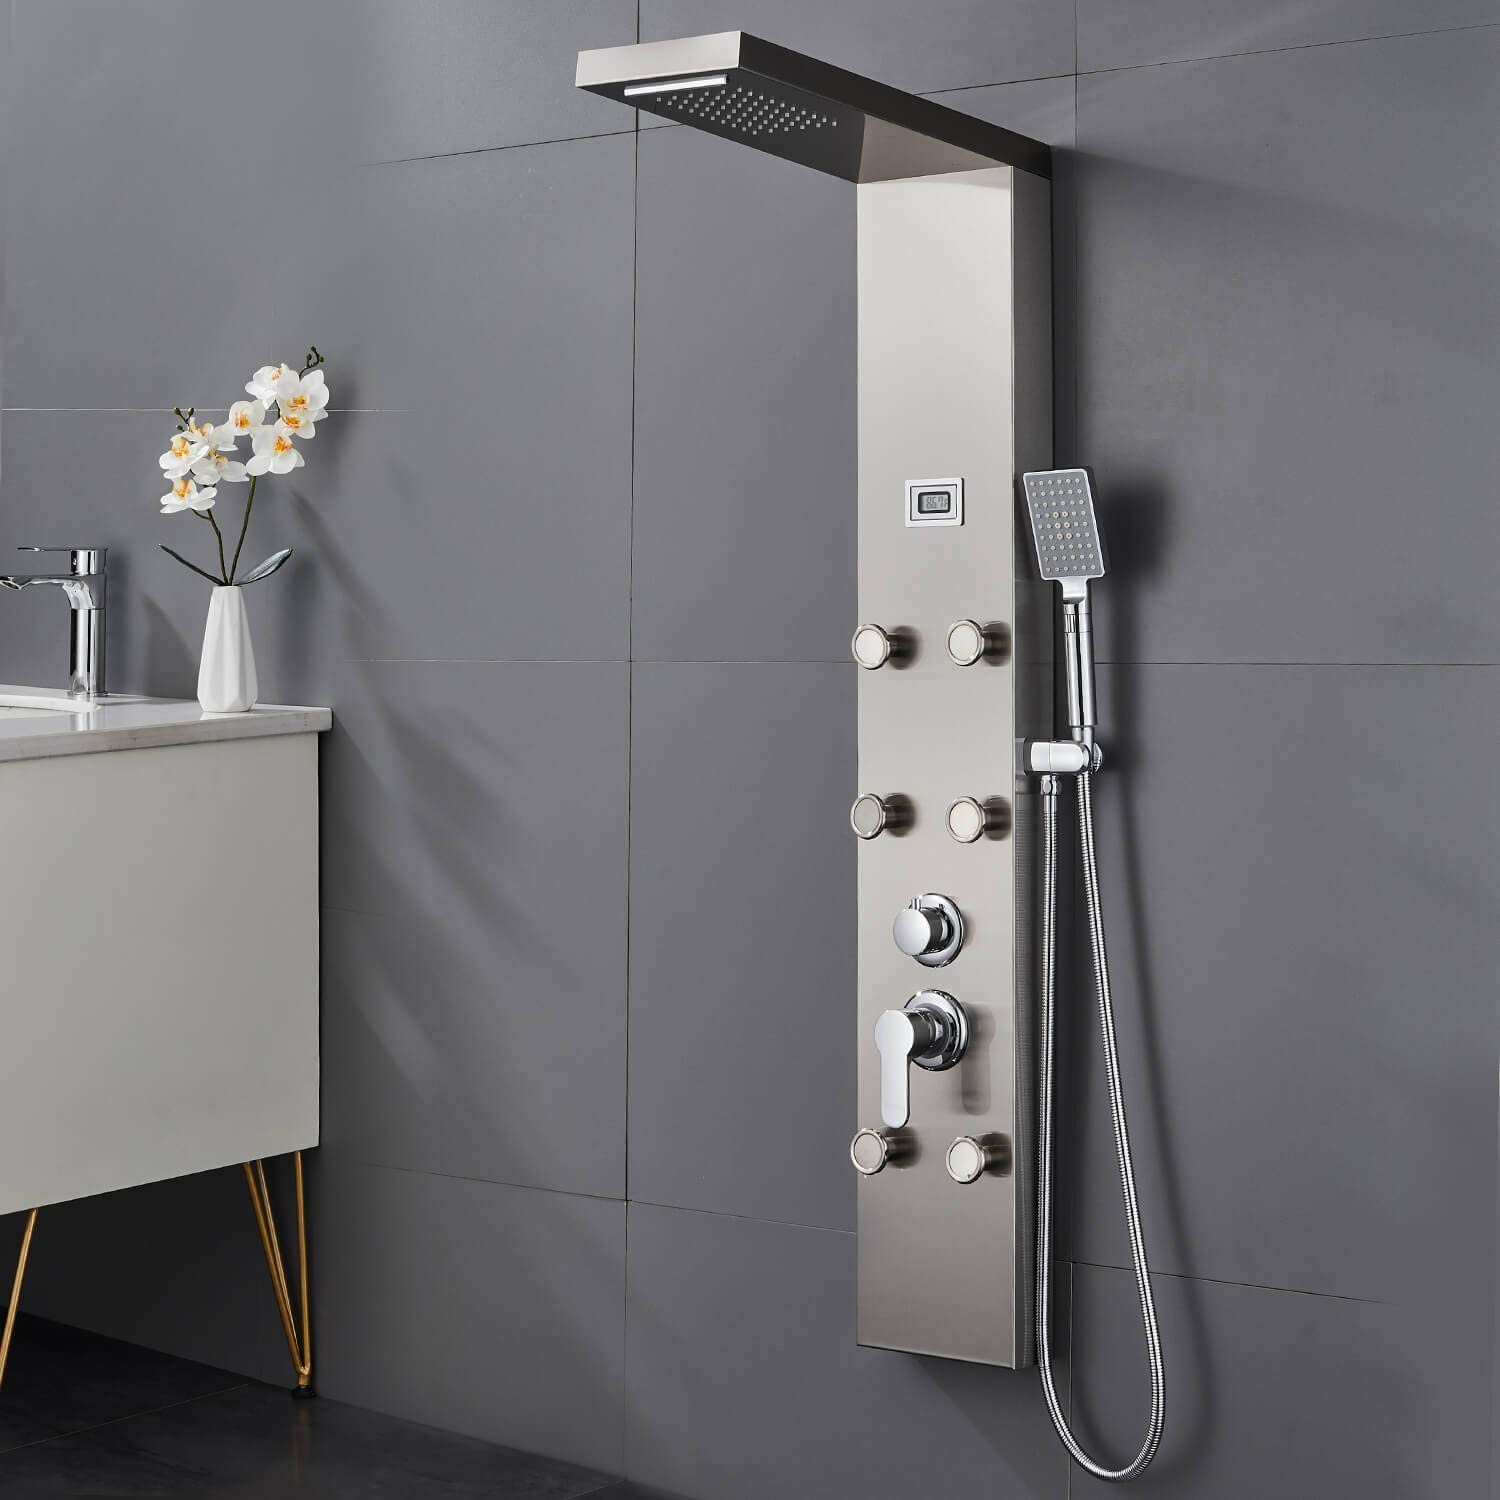 Shower Panel Column Tower LED Temperature Screen Stainless Steel 304 Shower System Water Tower Hydromassage and Waterfall Shower with 5 Functions,Massage Nozzles,Handheld Shower Jets for Bathroom